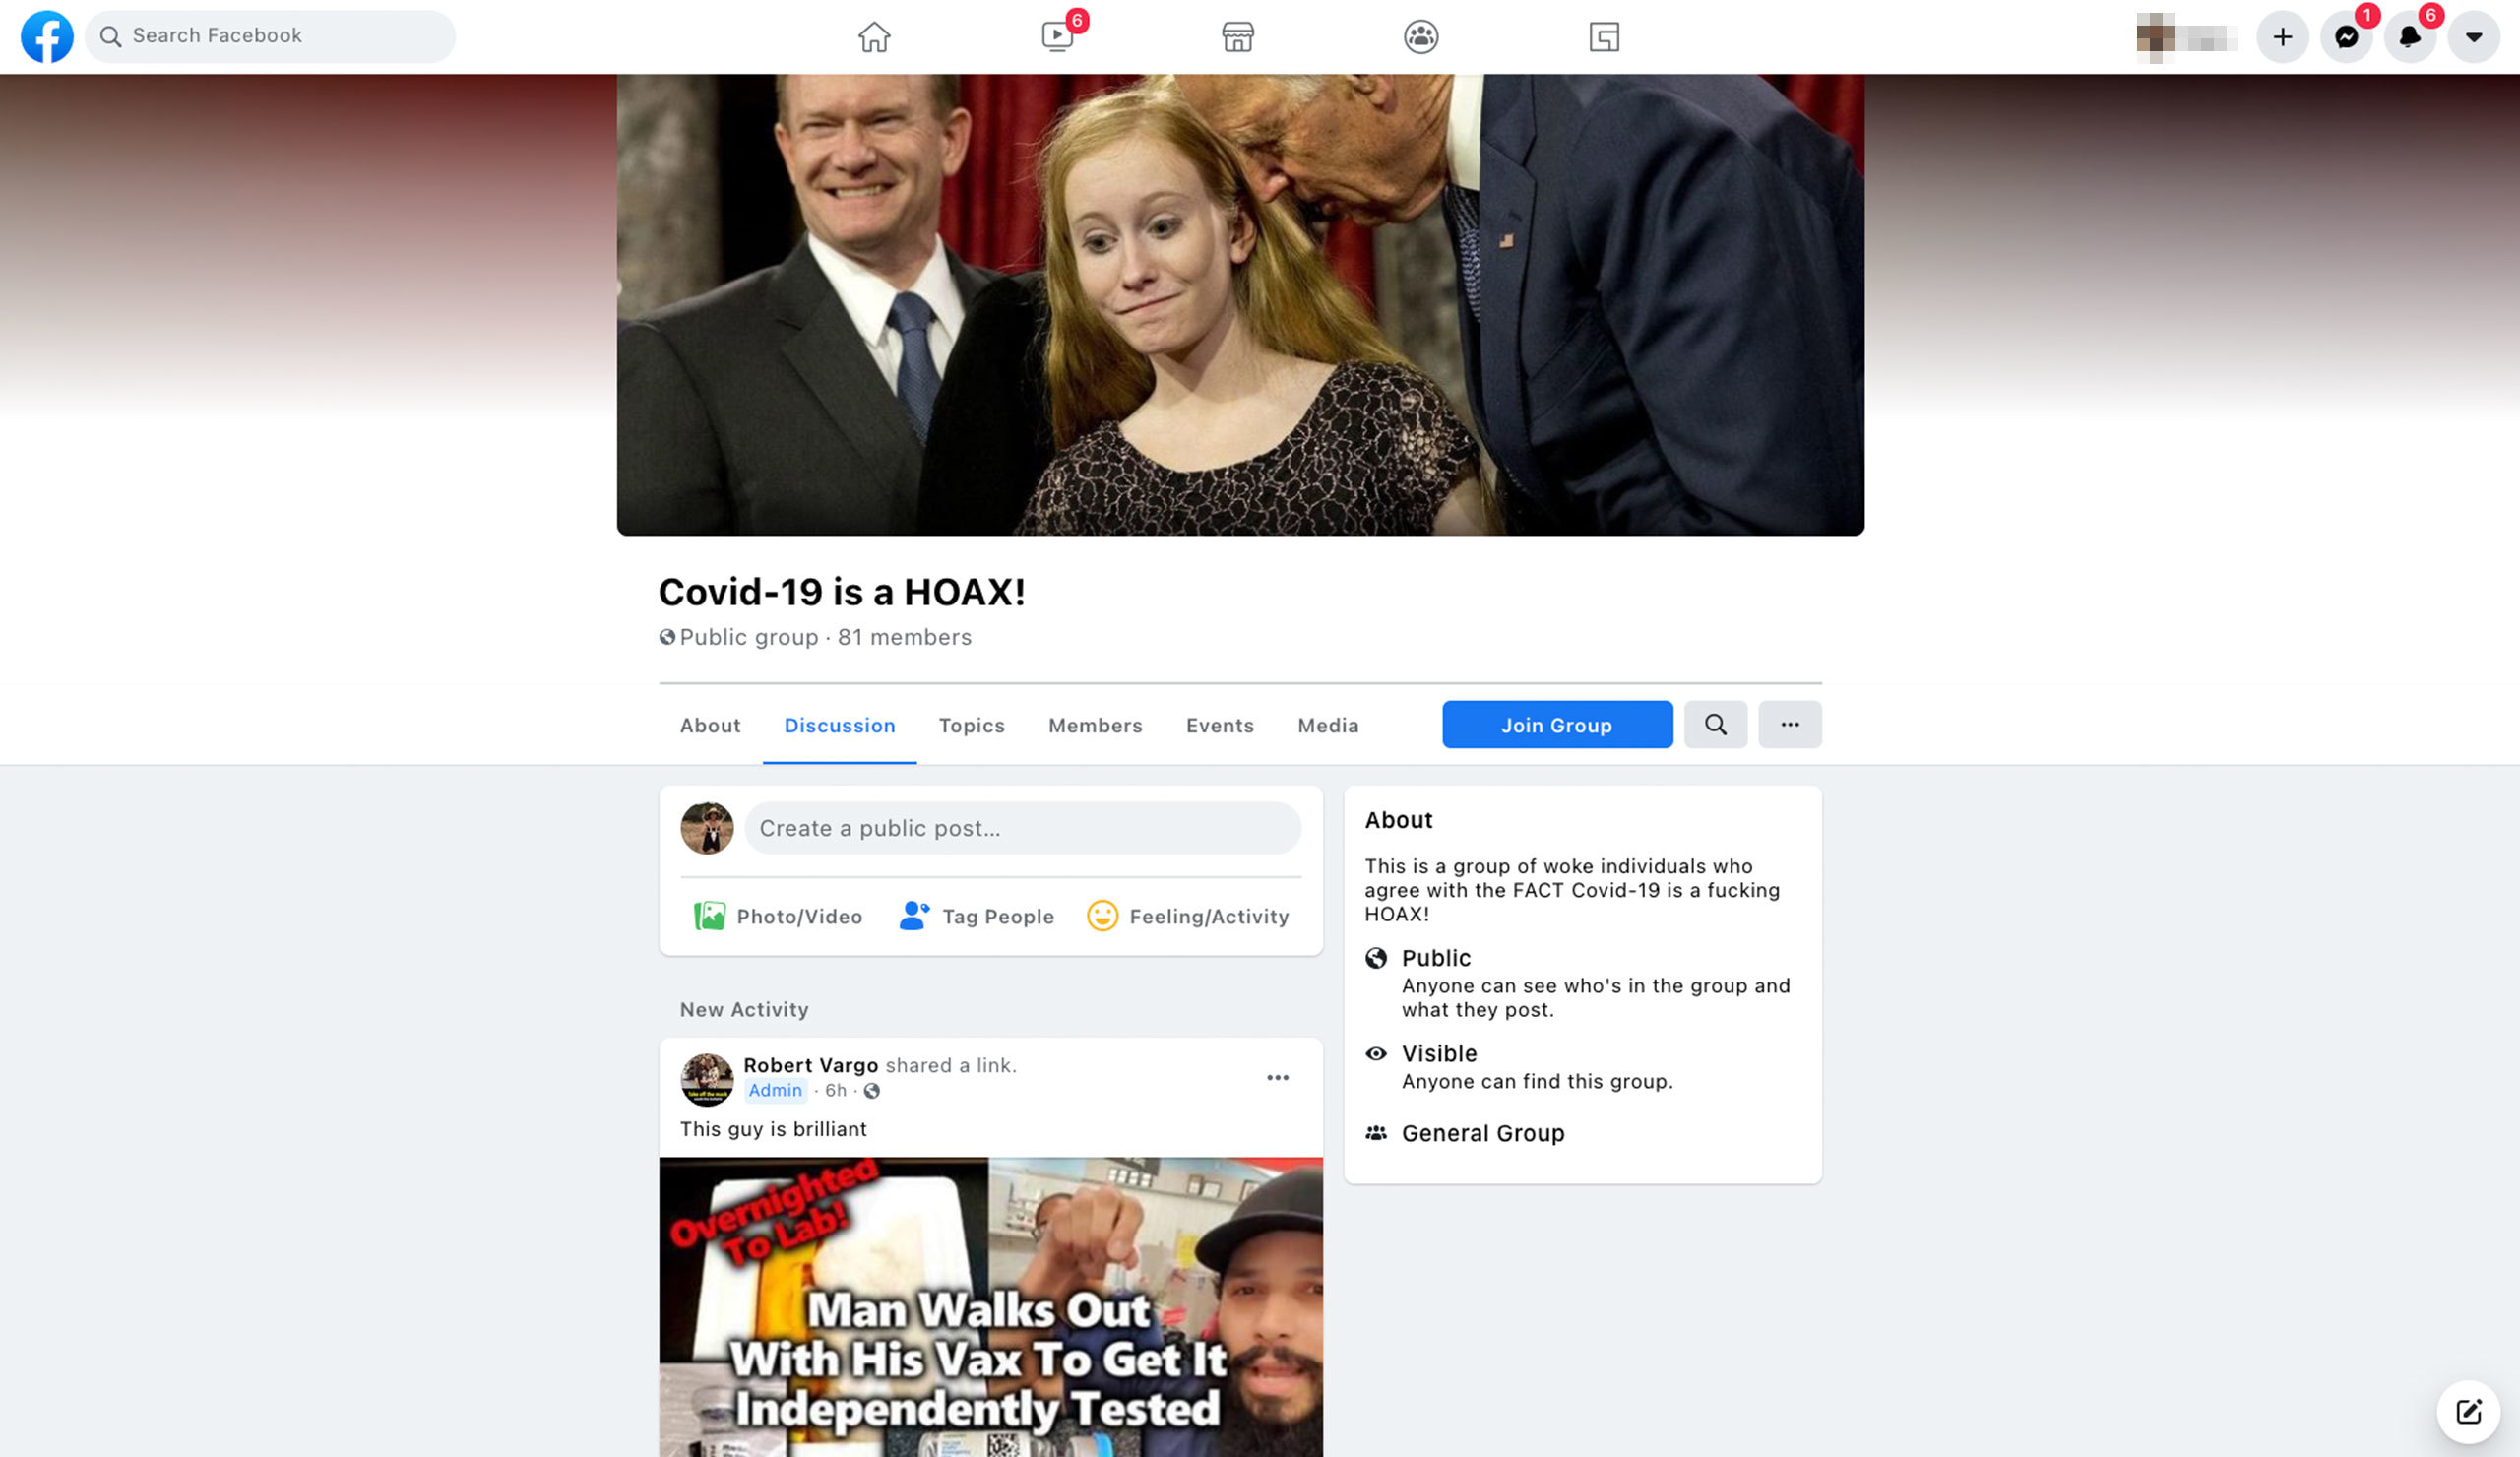 """Facebook suggested that one of our panelists join a group that describes itself as """"a group of woke individuals who agree with the FACT Covid-19 is a fucking HOAX!"""" Source: Facebook"""